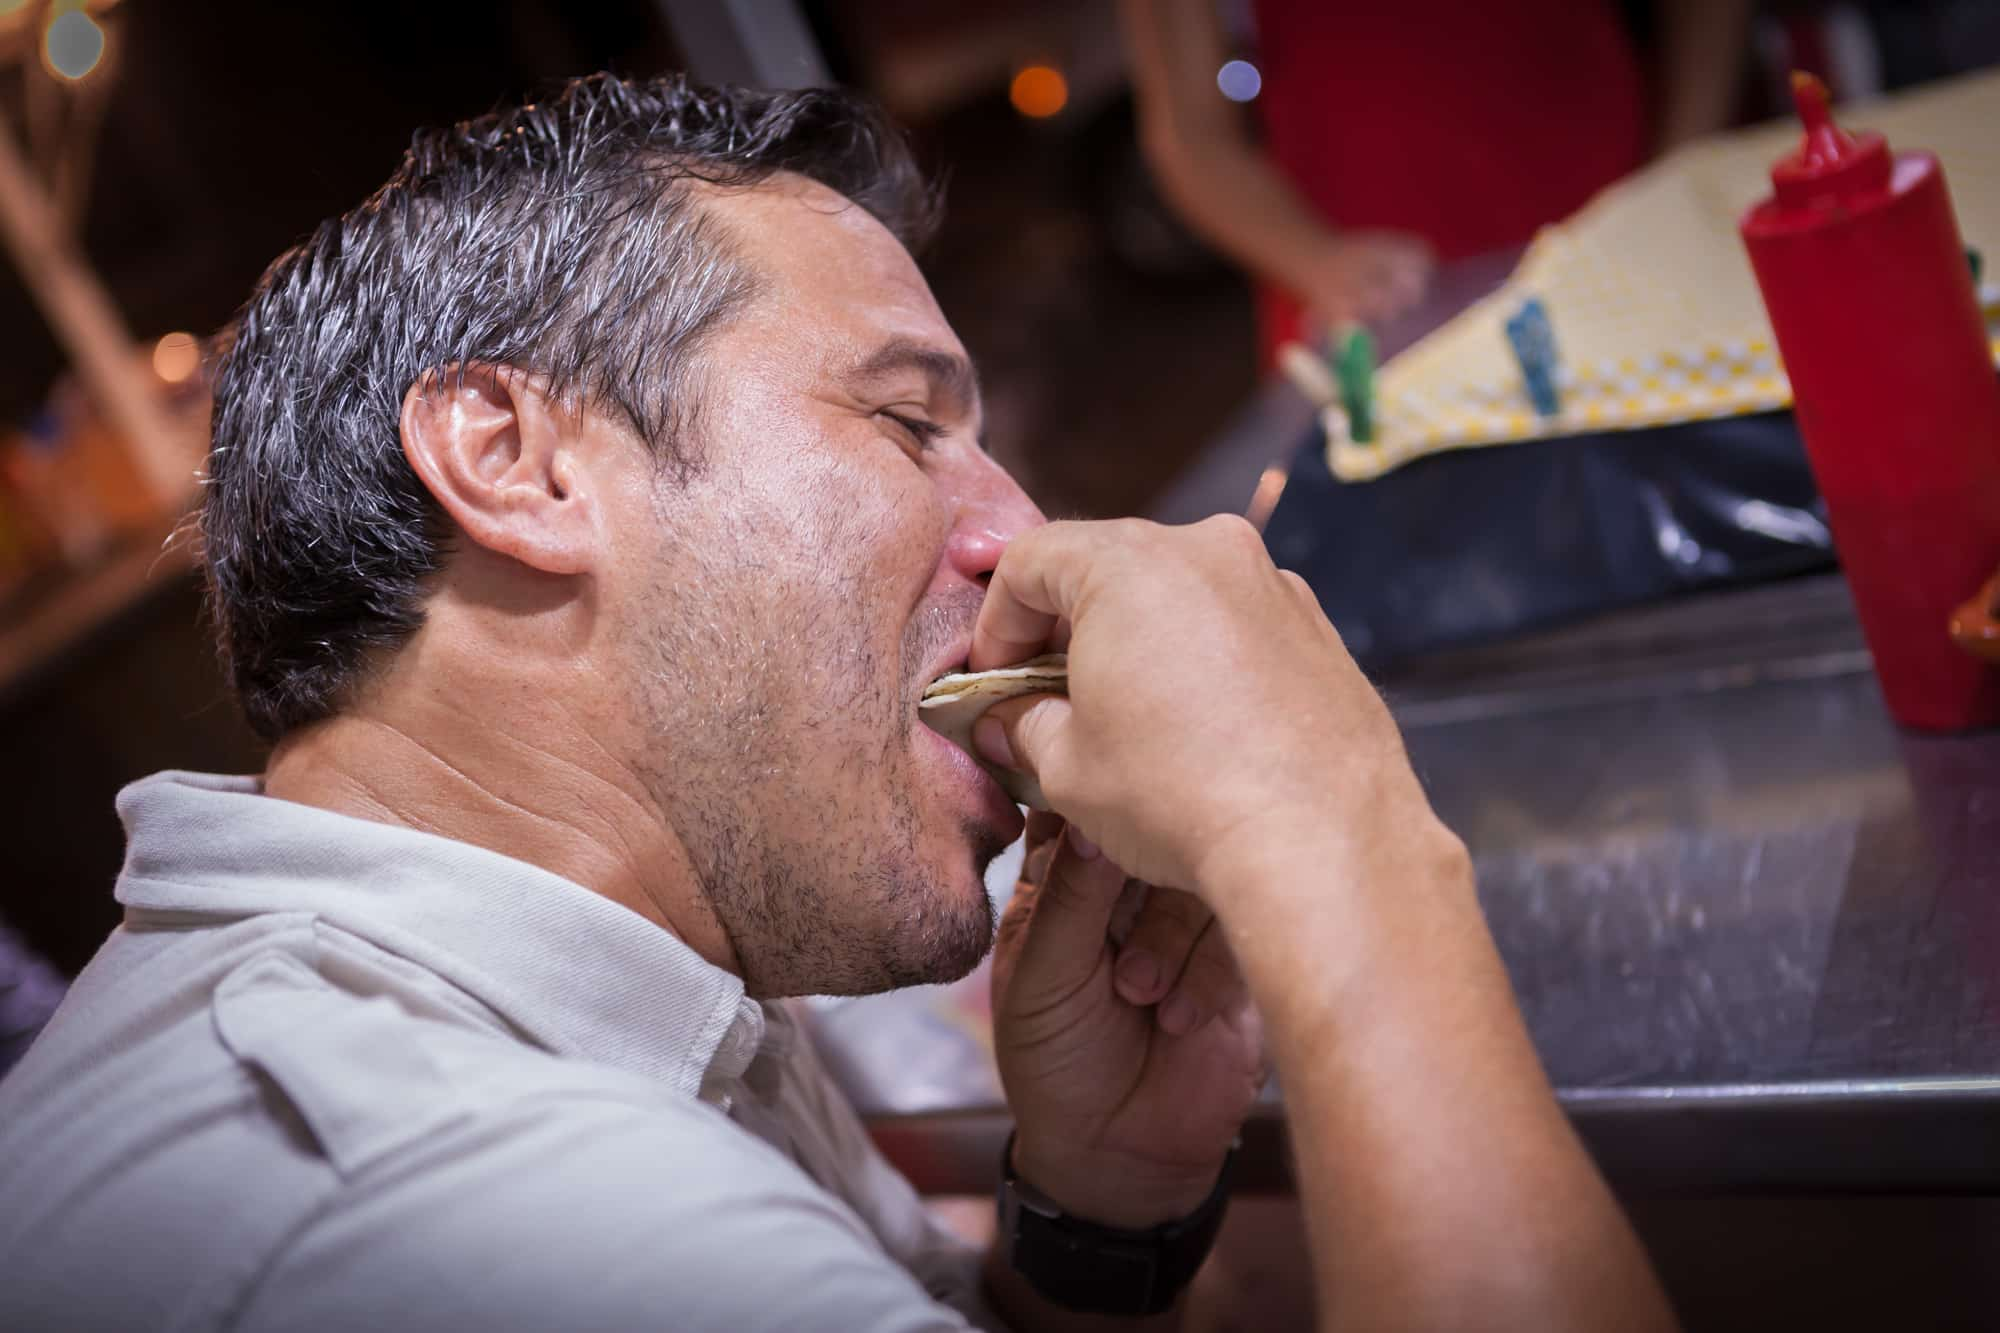 A man enjoying a bite of food on his Vallarta Food Tour